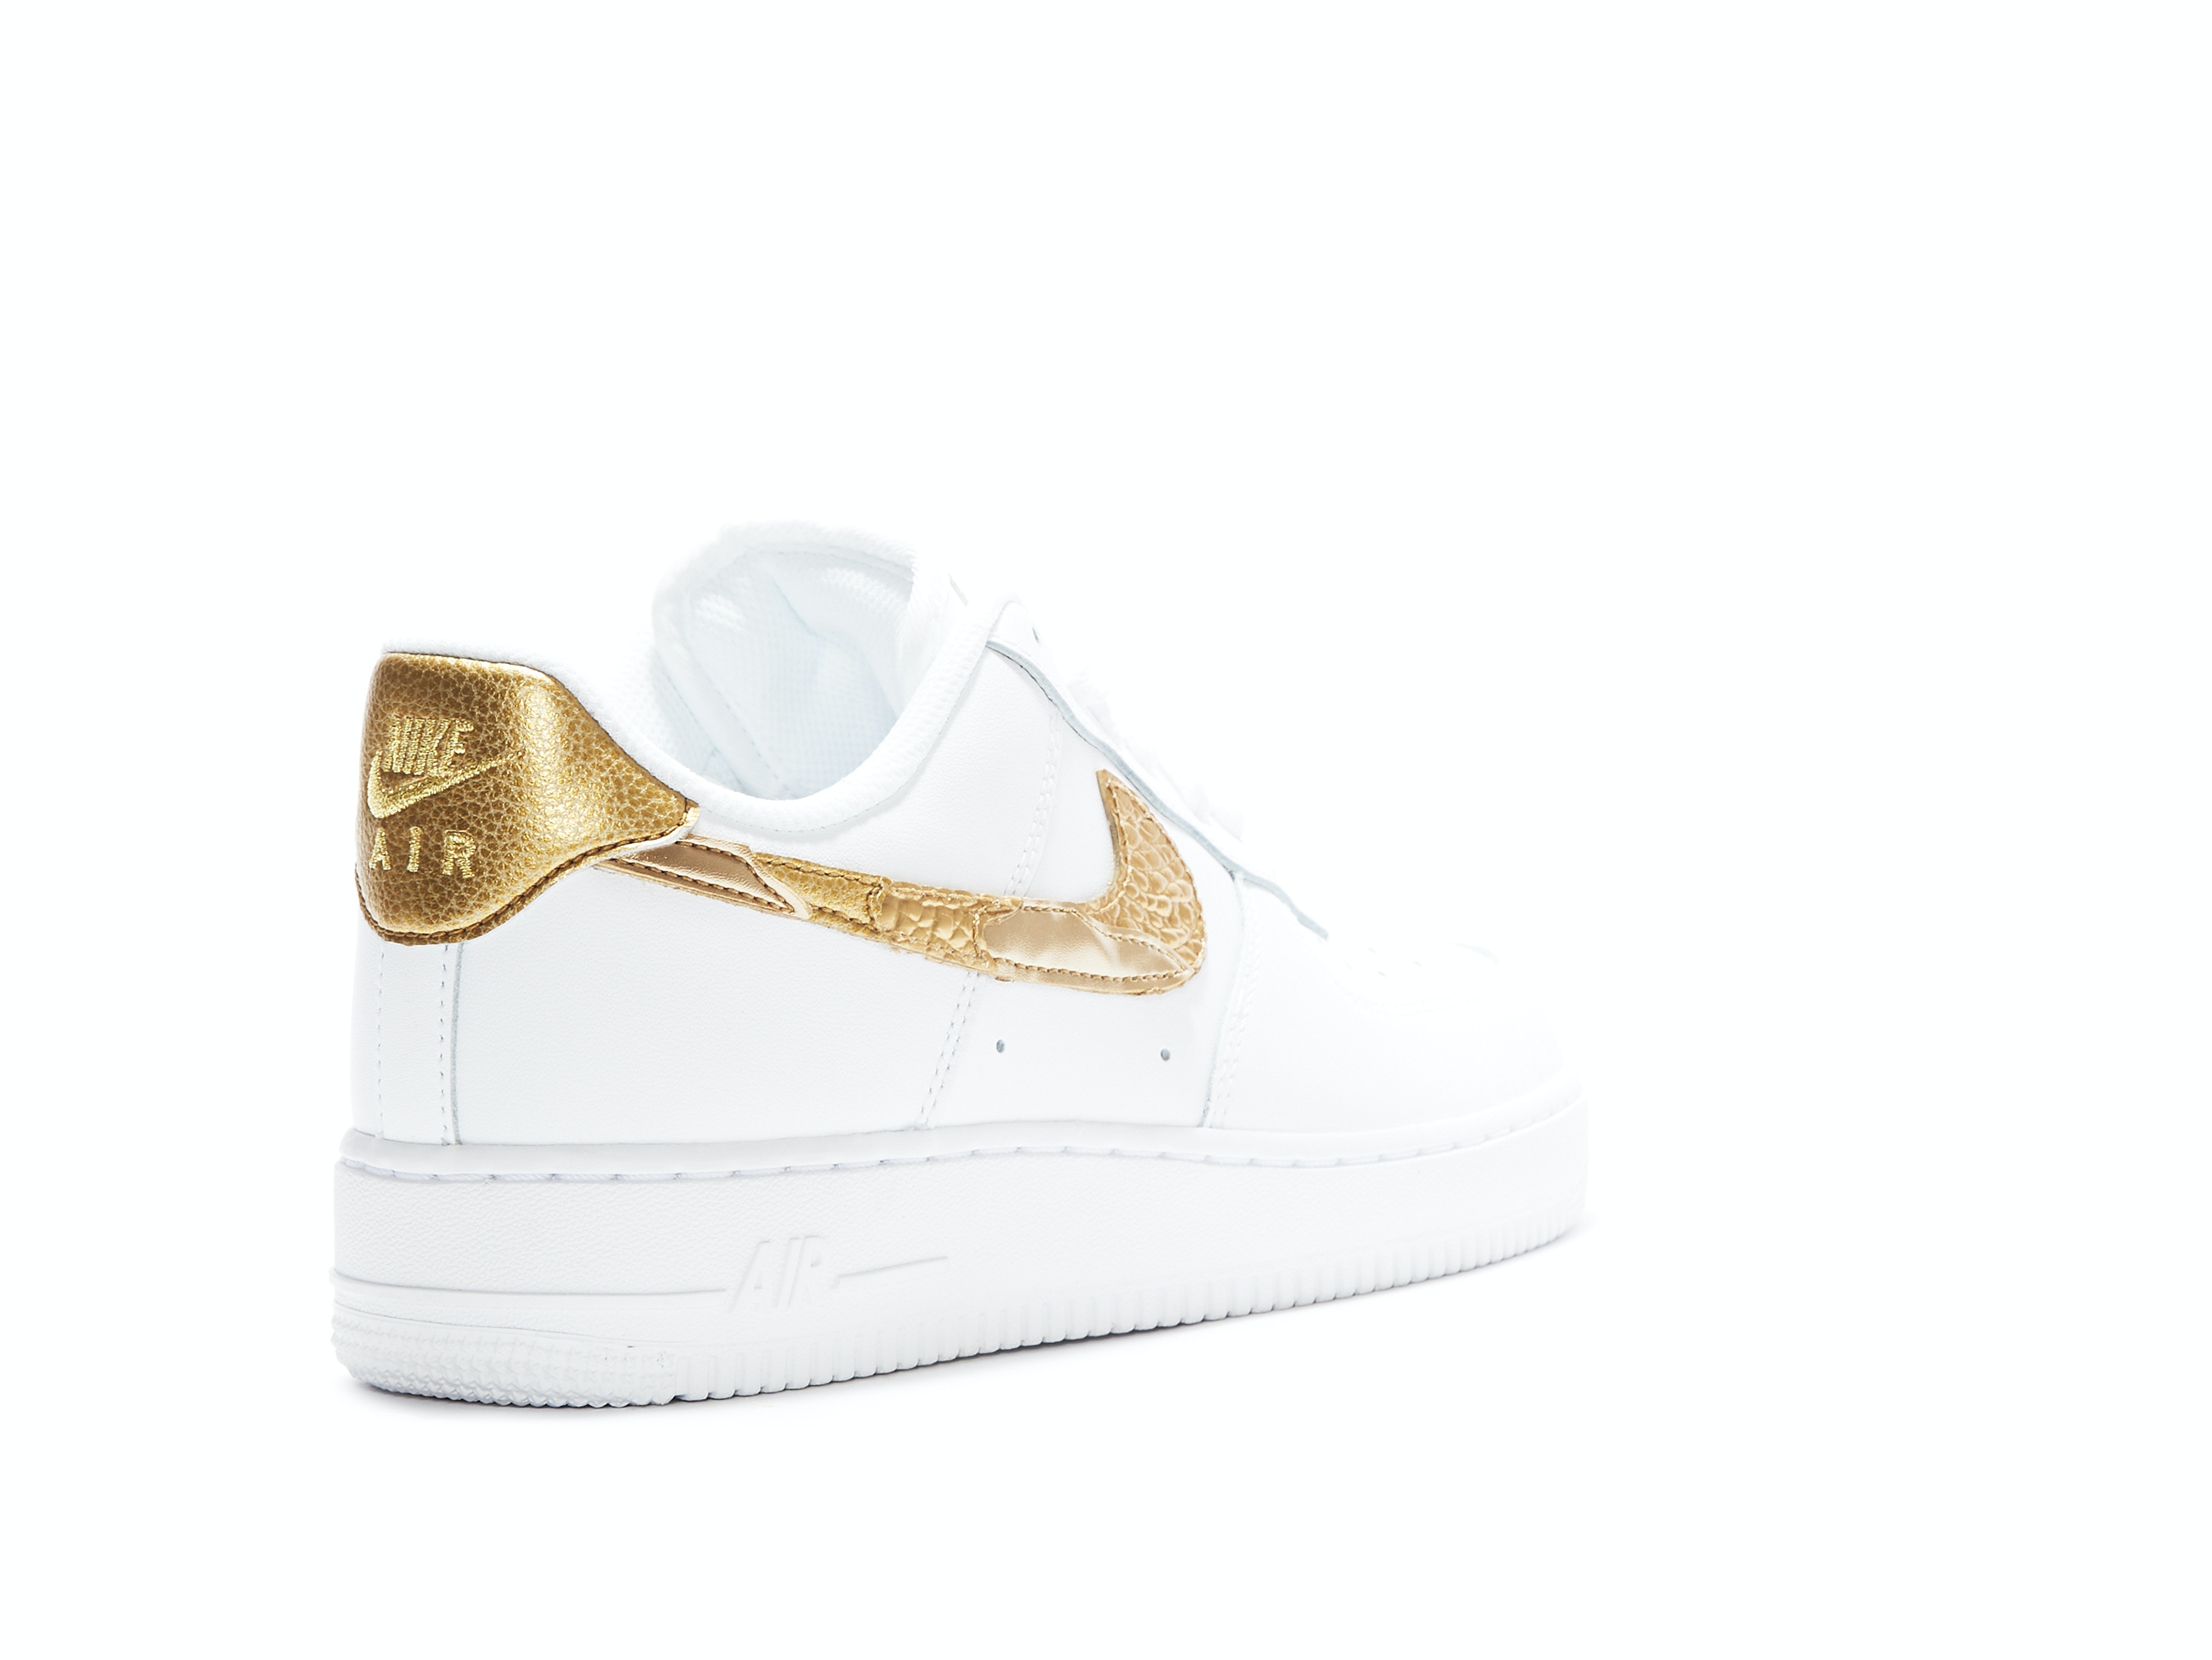 91ab1a877 Air Force 1 CR7 Golden Patchwork. 100% AuthenticAvg Delivery Time: 1-2  days. Nike / AQ0666-100